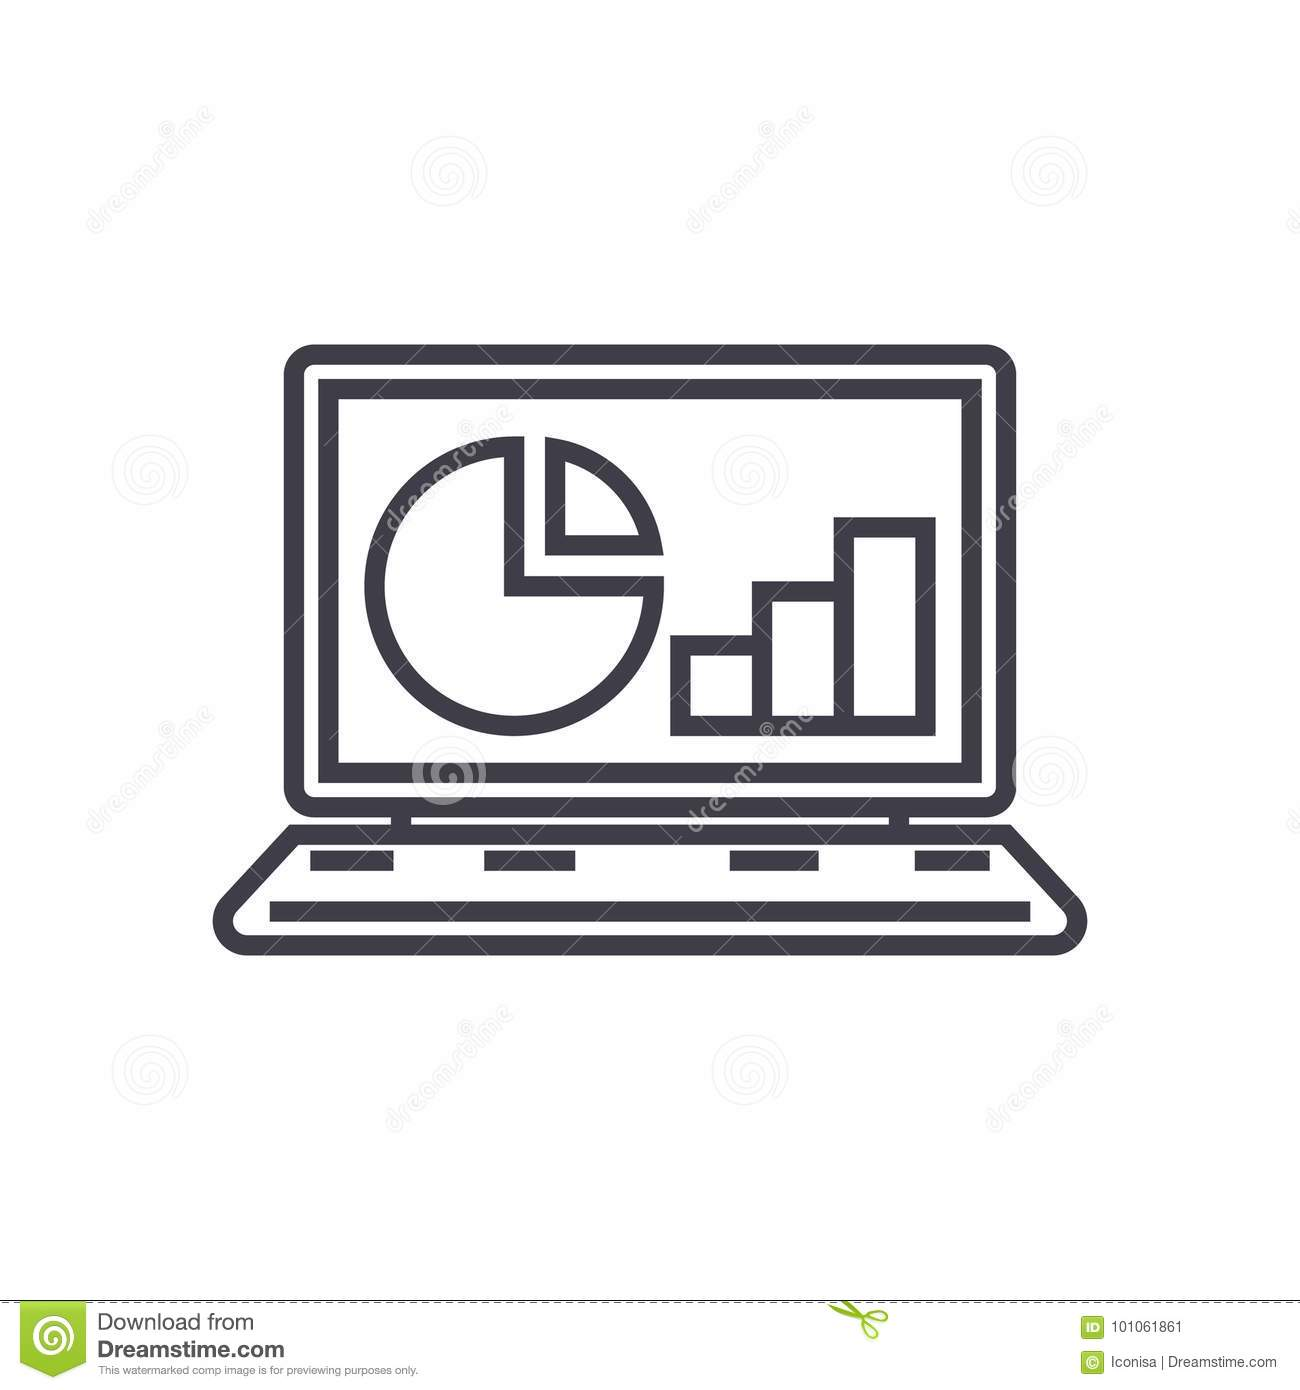 Online statistics, data analytics vector line icon, sign, illustration on background, editable strokes